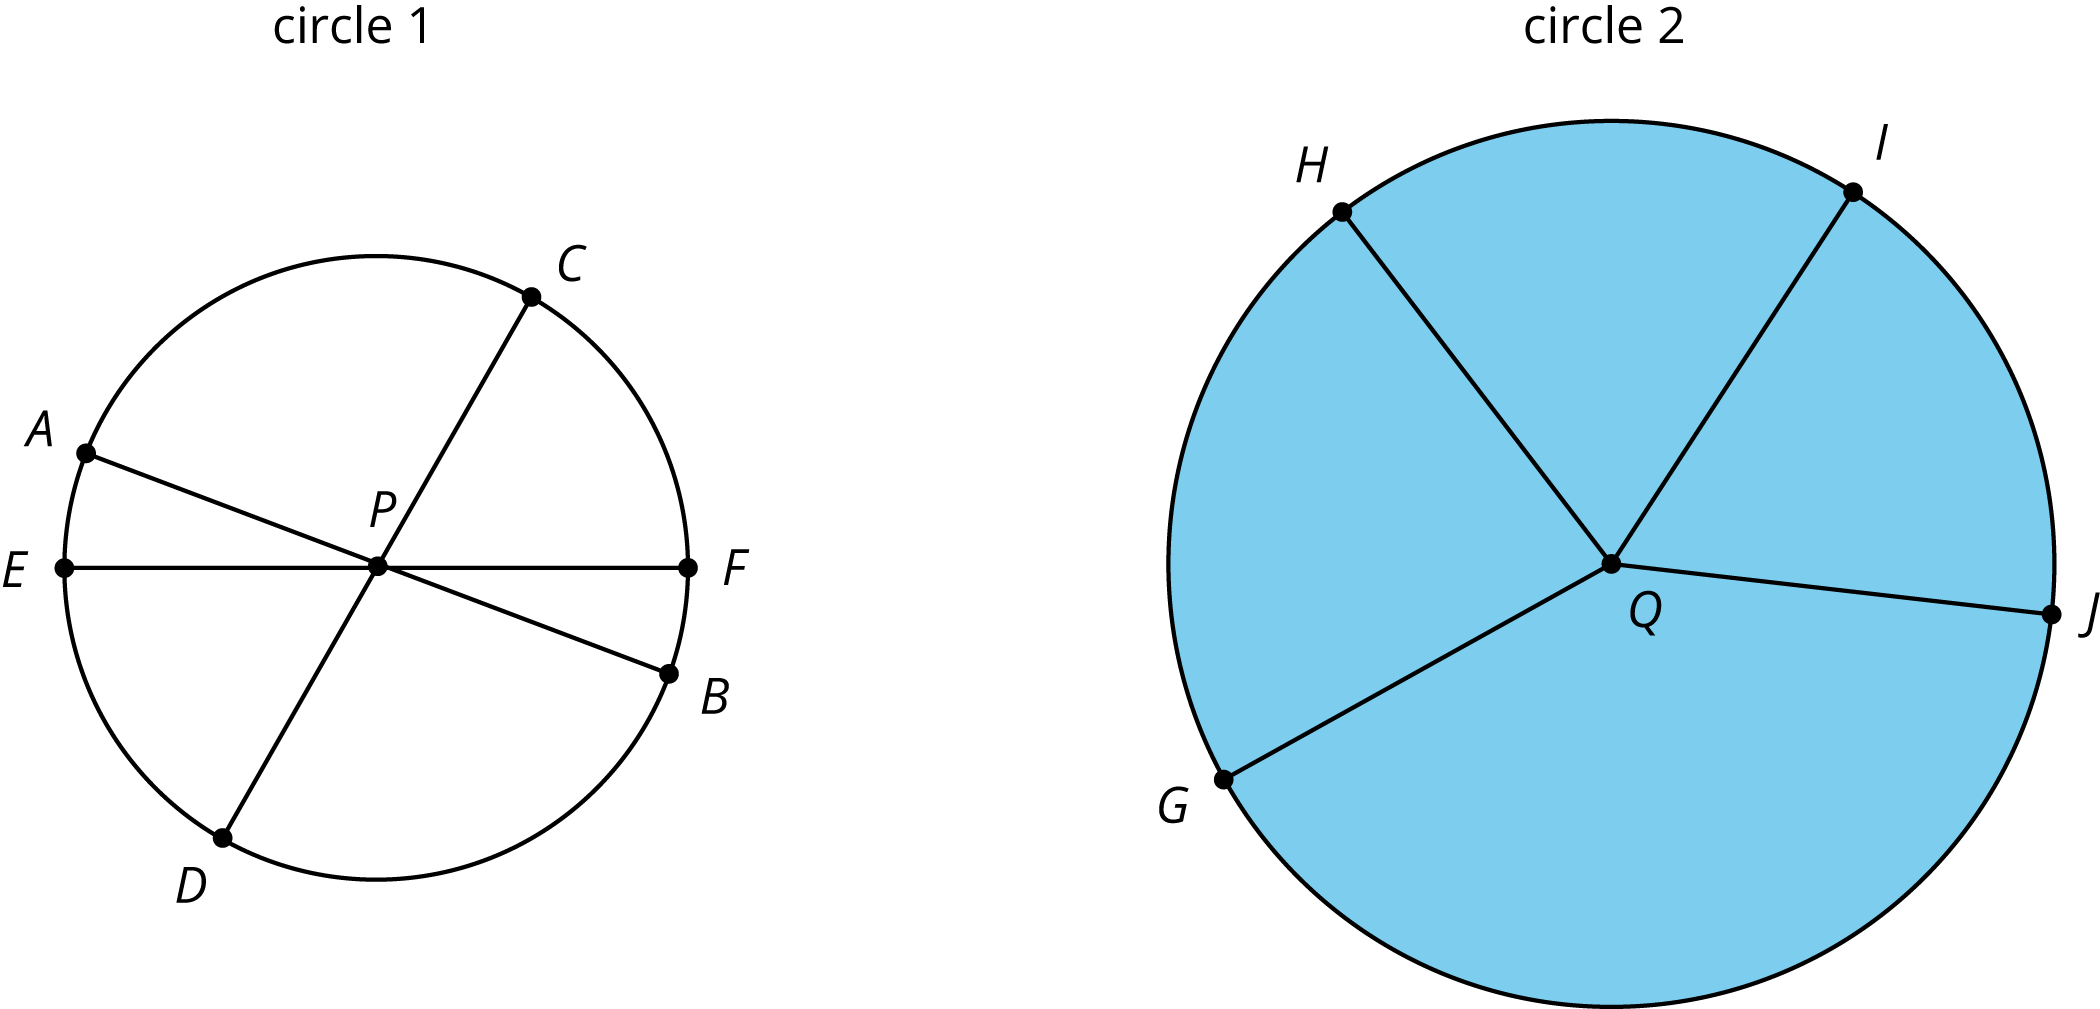 Two circles labeled circle 1 and circle 2. Circle 1 has a center at P and the points A, C, F, B, D, and E lie on the circle. Diameters A B, C D, and E F are drawn.  Circle 2 has a center at Q and the points G, H, I and J lie on the circle. Line segments Q G, Q H, Q I, and Q J are drawn.